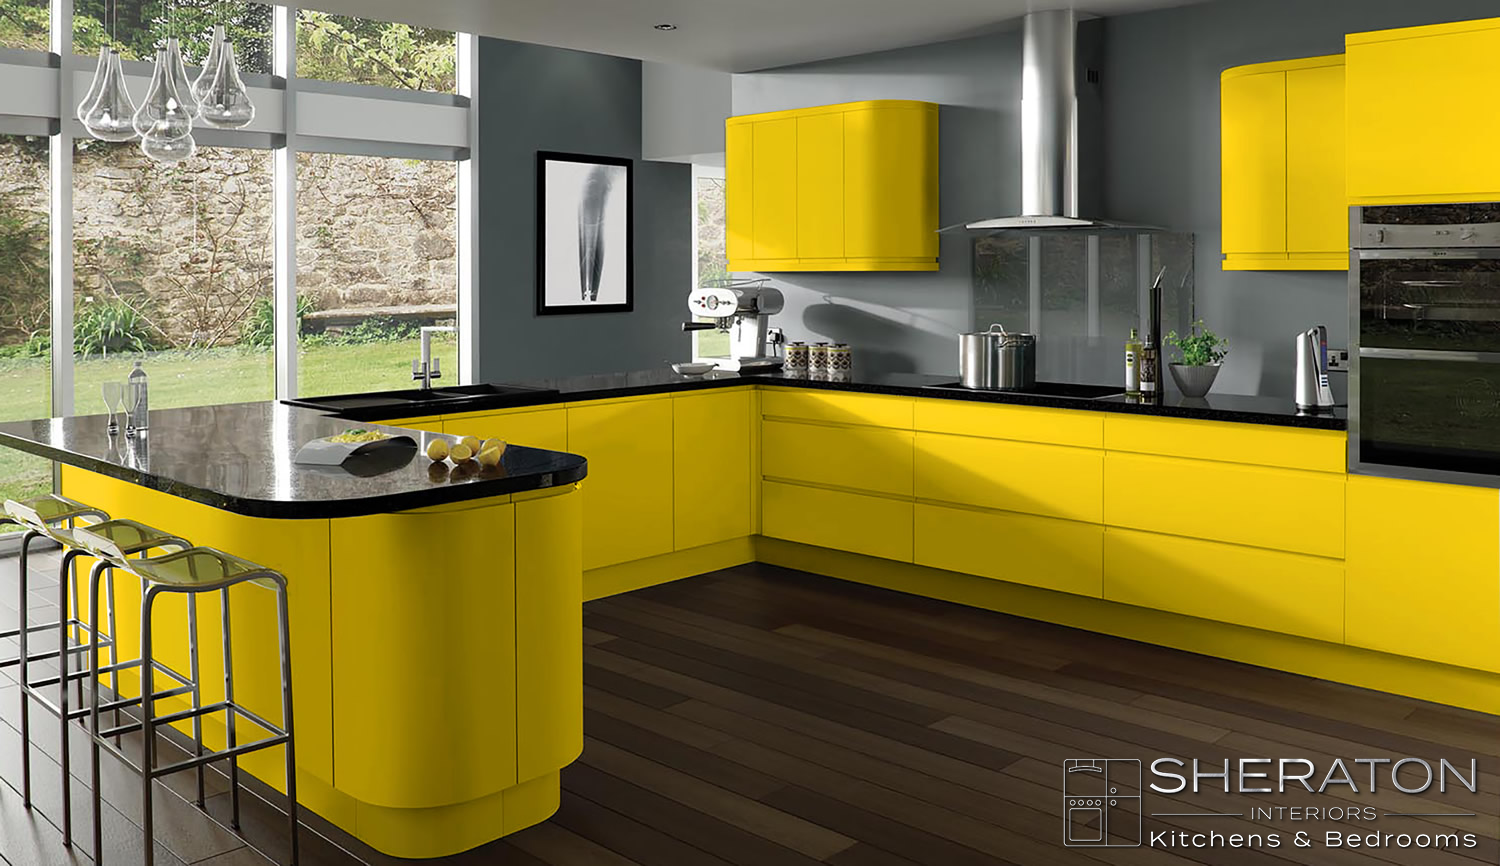 free kitchen design home visit yellow creates happiness and optimism browse 577